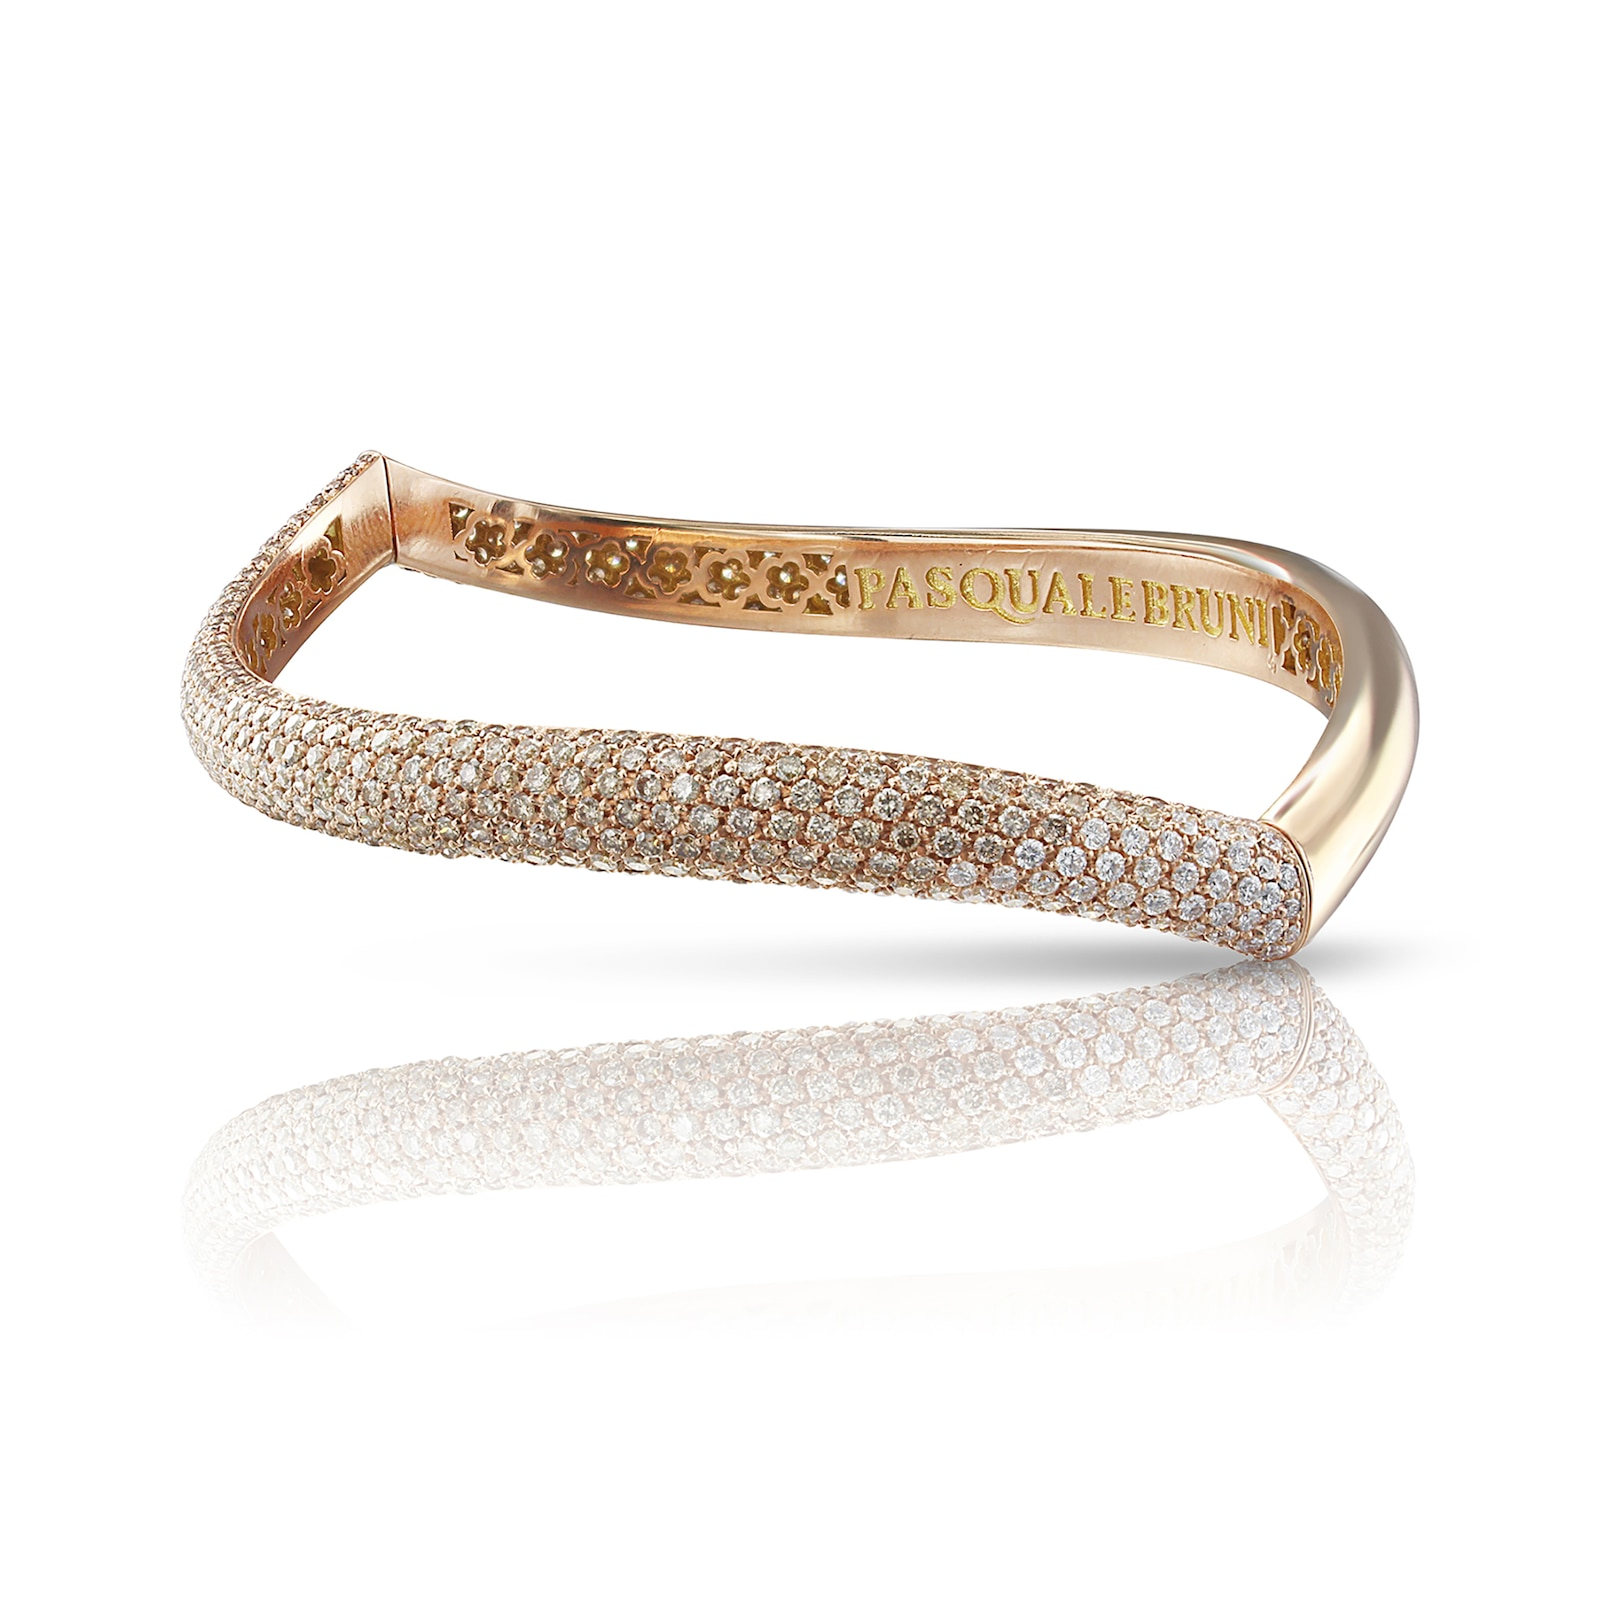 Pasquale Bruni Sensual Touch Bracelet With White And Champagne Diamonds